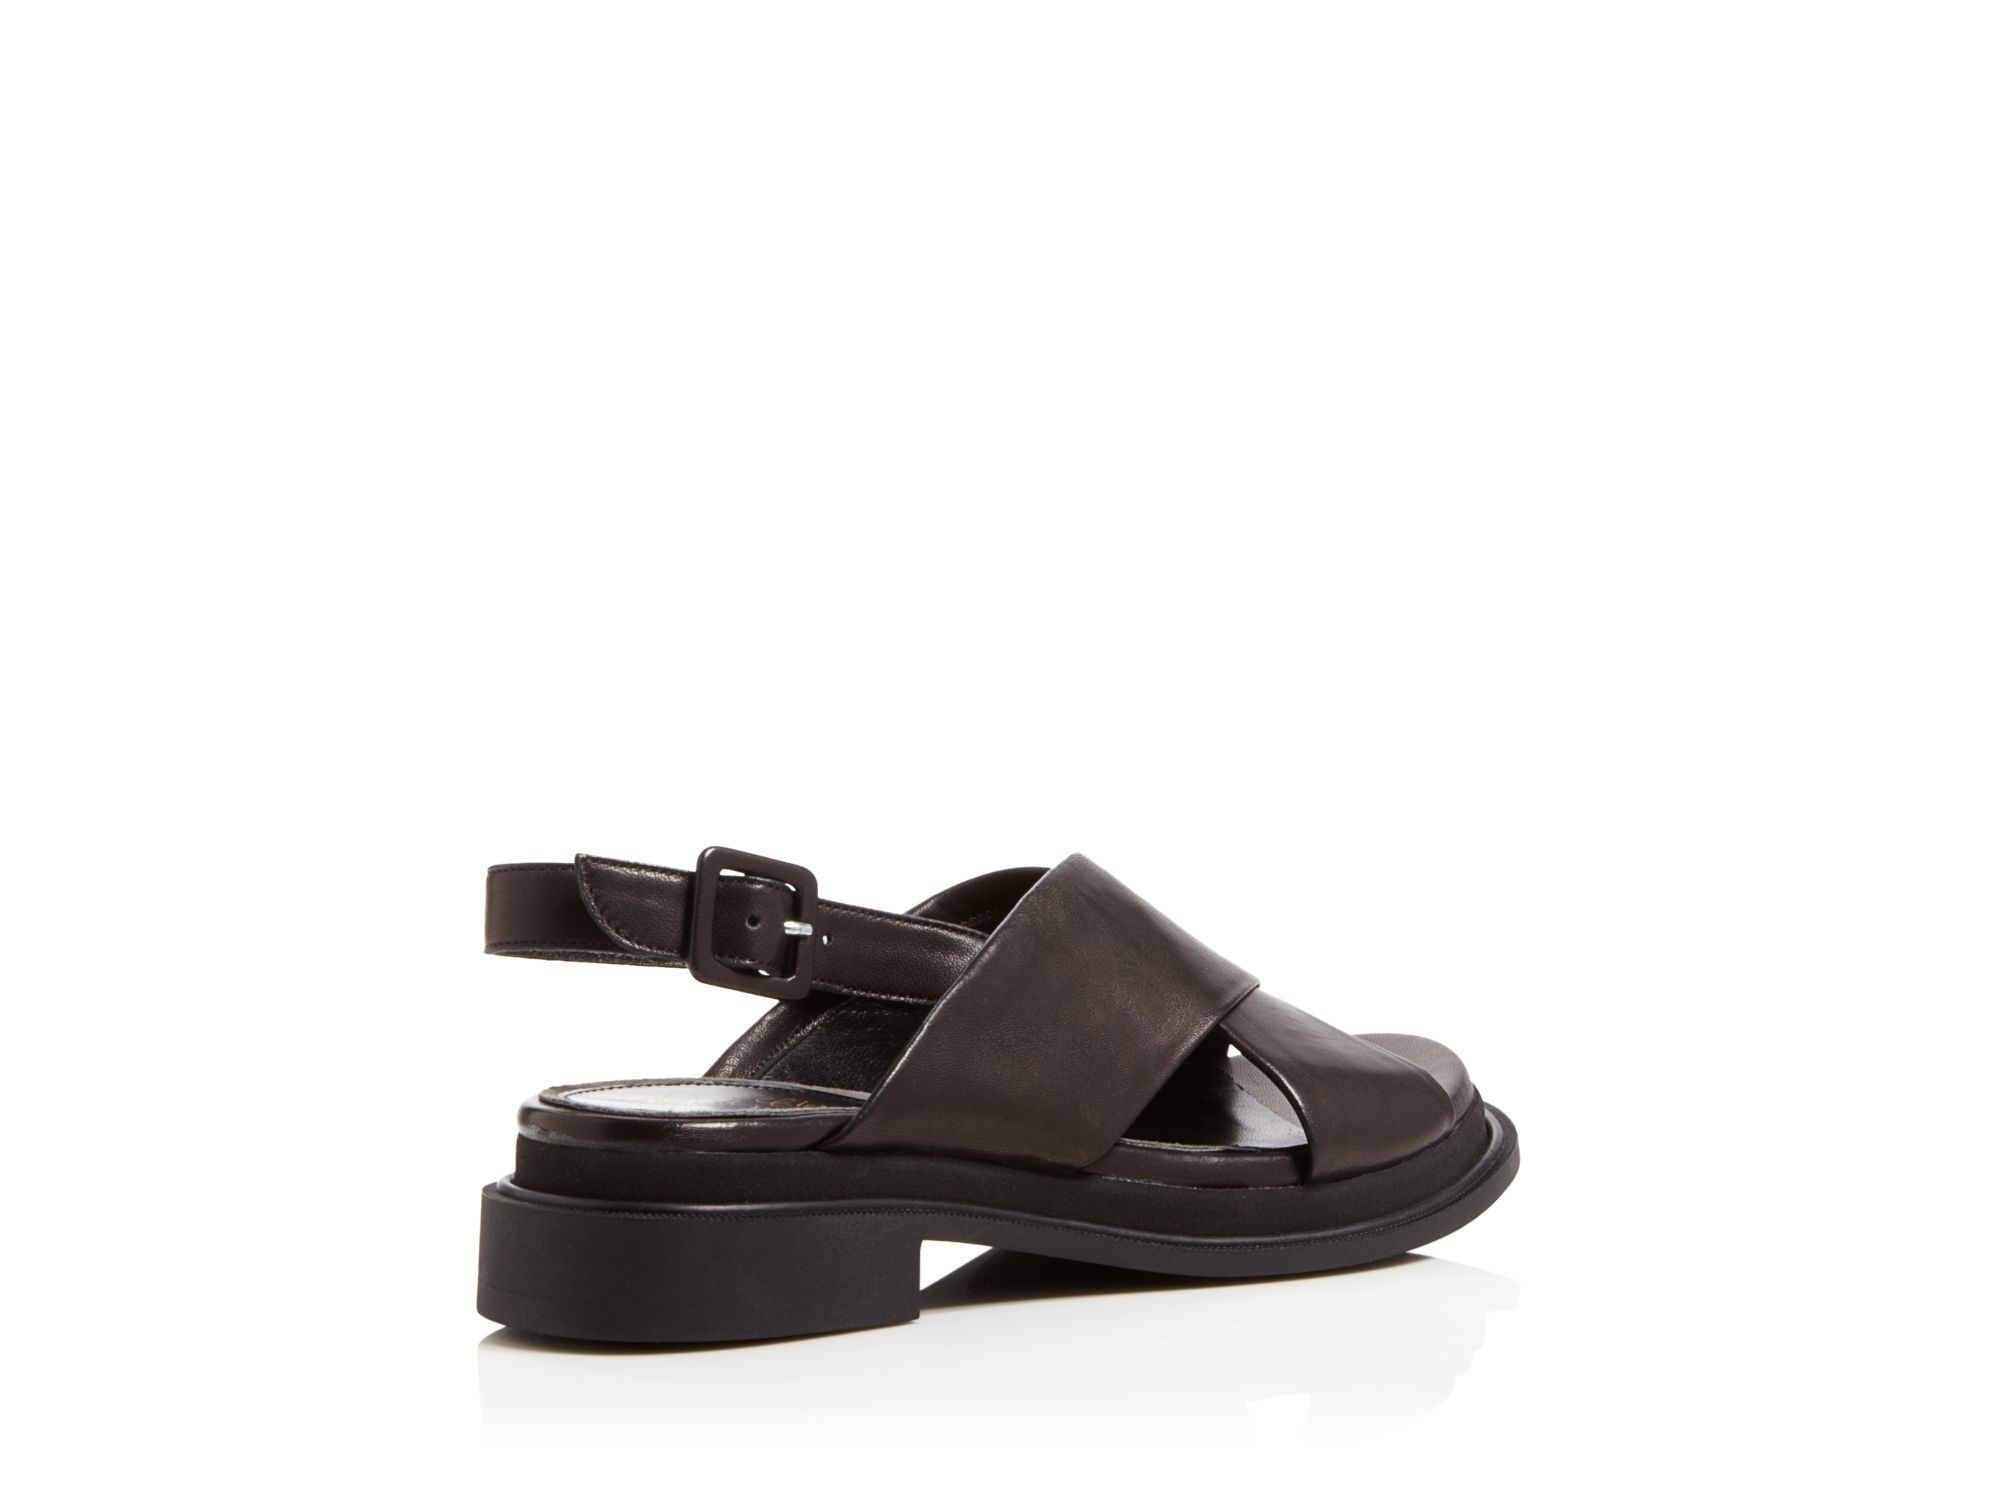 buckled open-toe sandals - White Robert Clergerie 9VoDV6